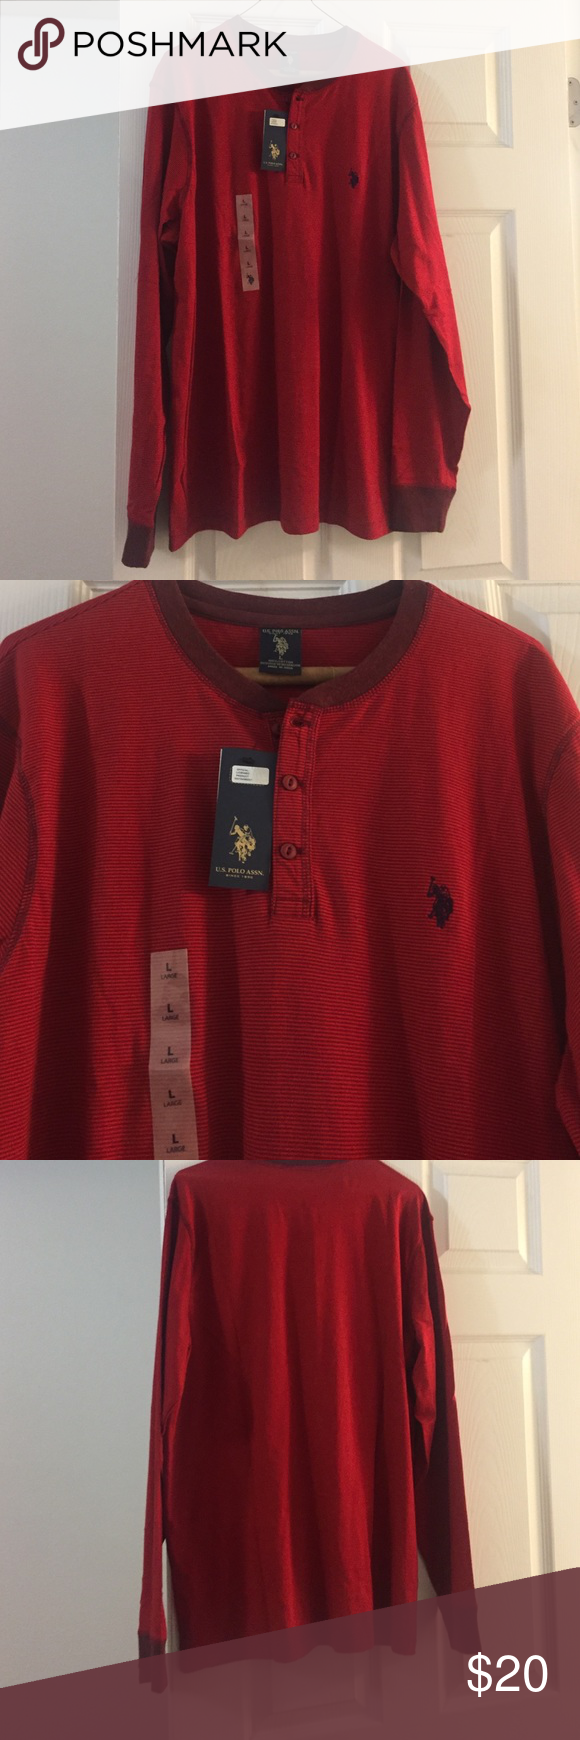 Polo red long sleeve Men's long sleeve red polo U.S. Polo Assn. Shirts Tees - Long Sleeve